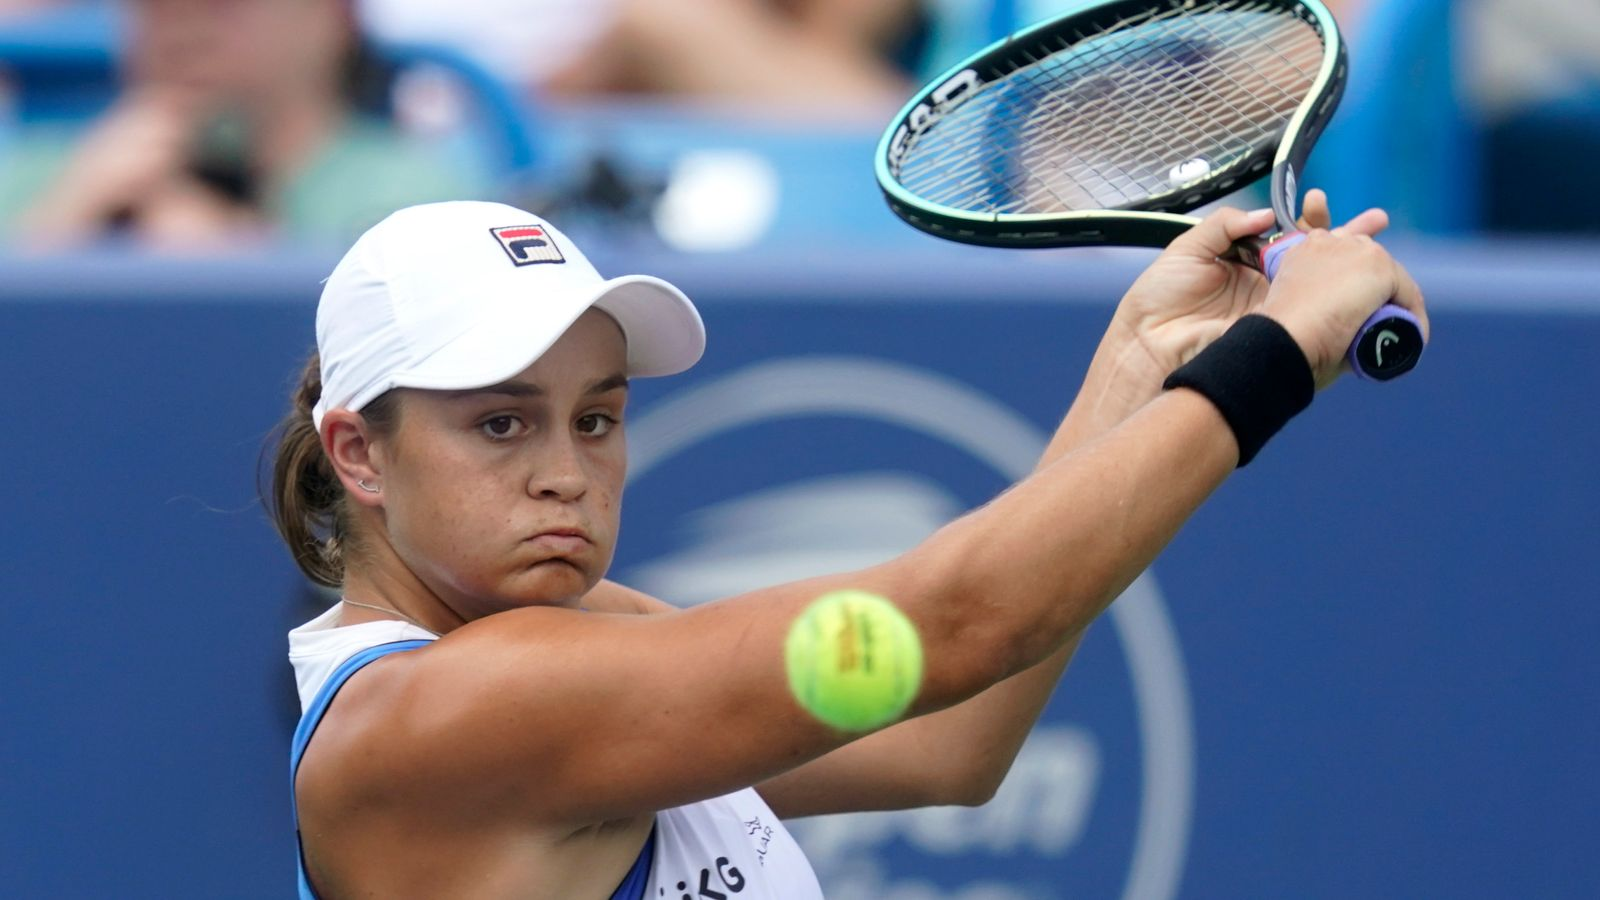 Ashleigh Barty withdraws from WTA finals and ends 2021 season